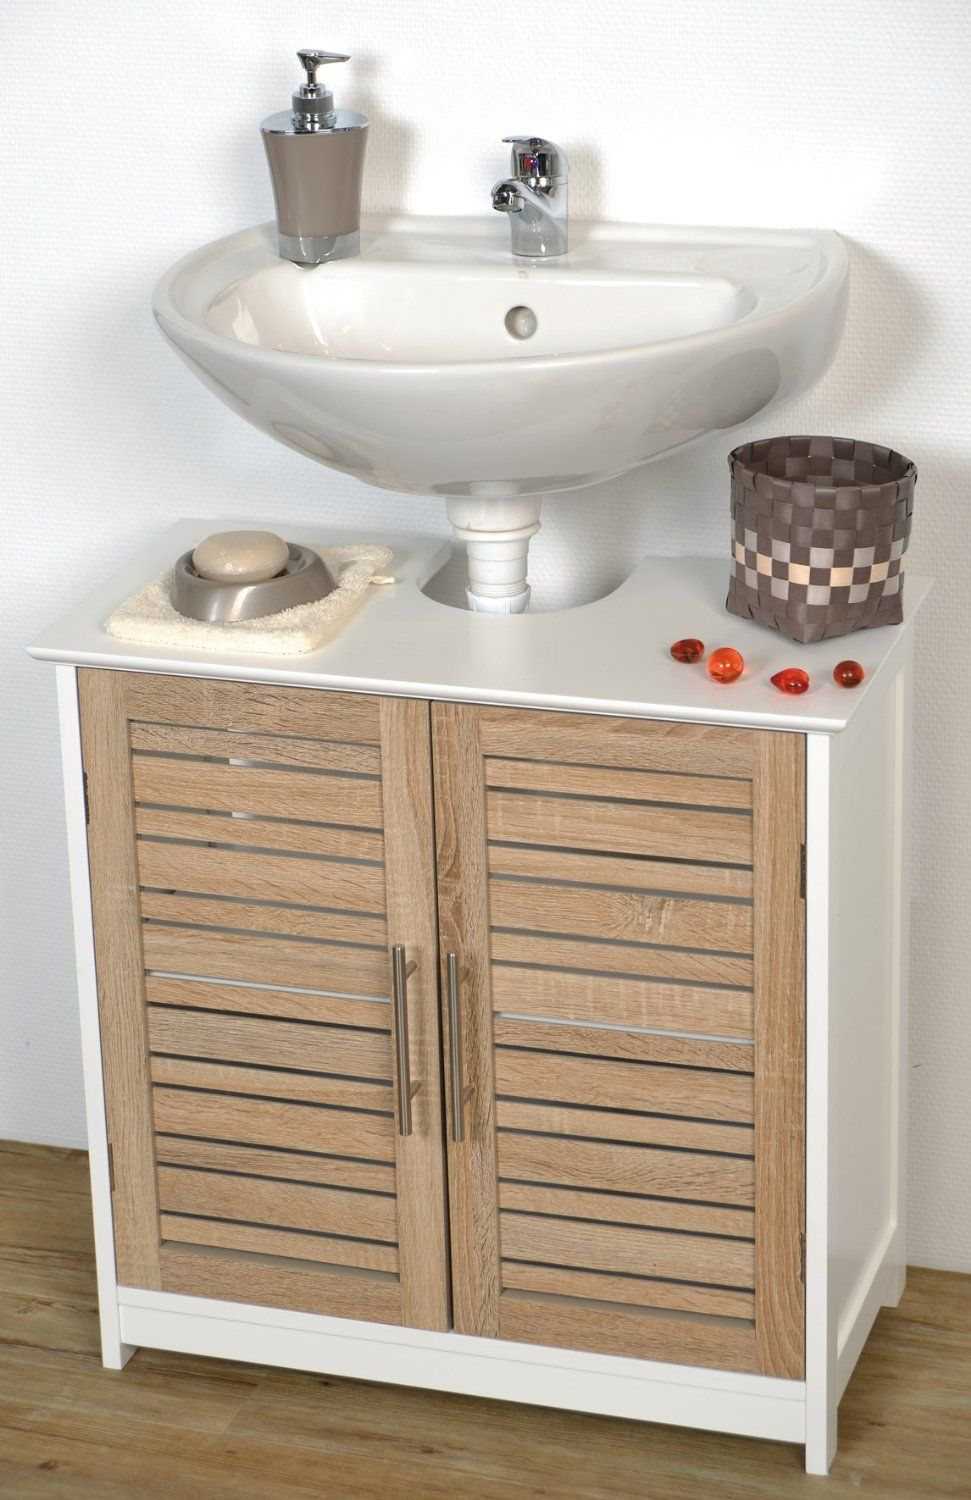 Bath vanity cabinet stockholm brown bamboo - Under sink bathroom storage cabinet ...